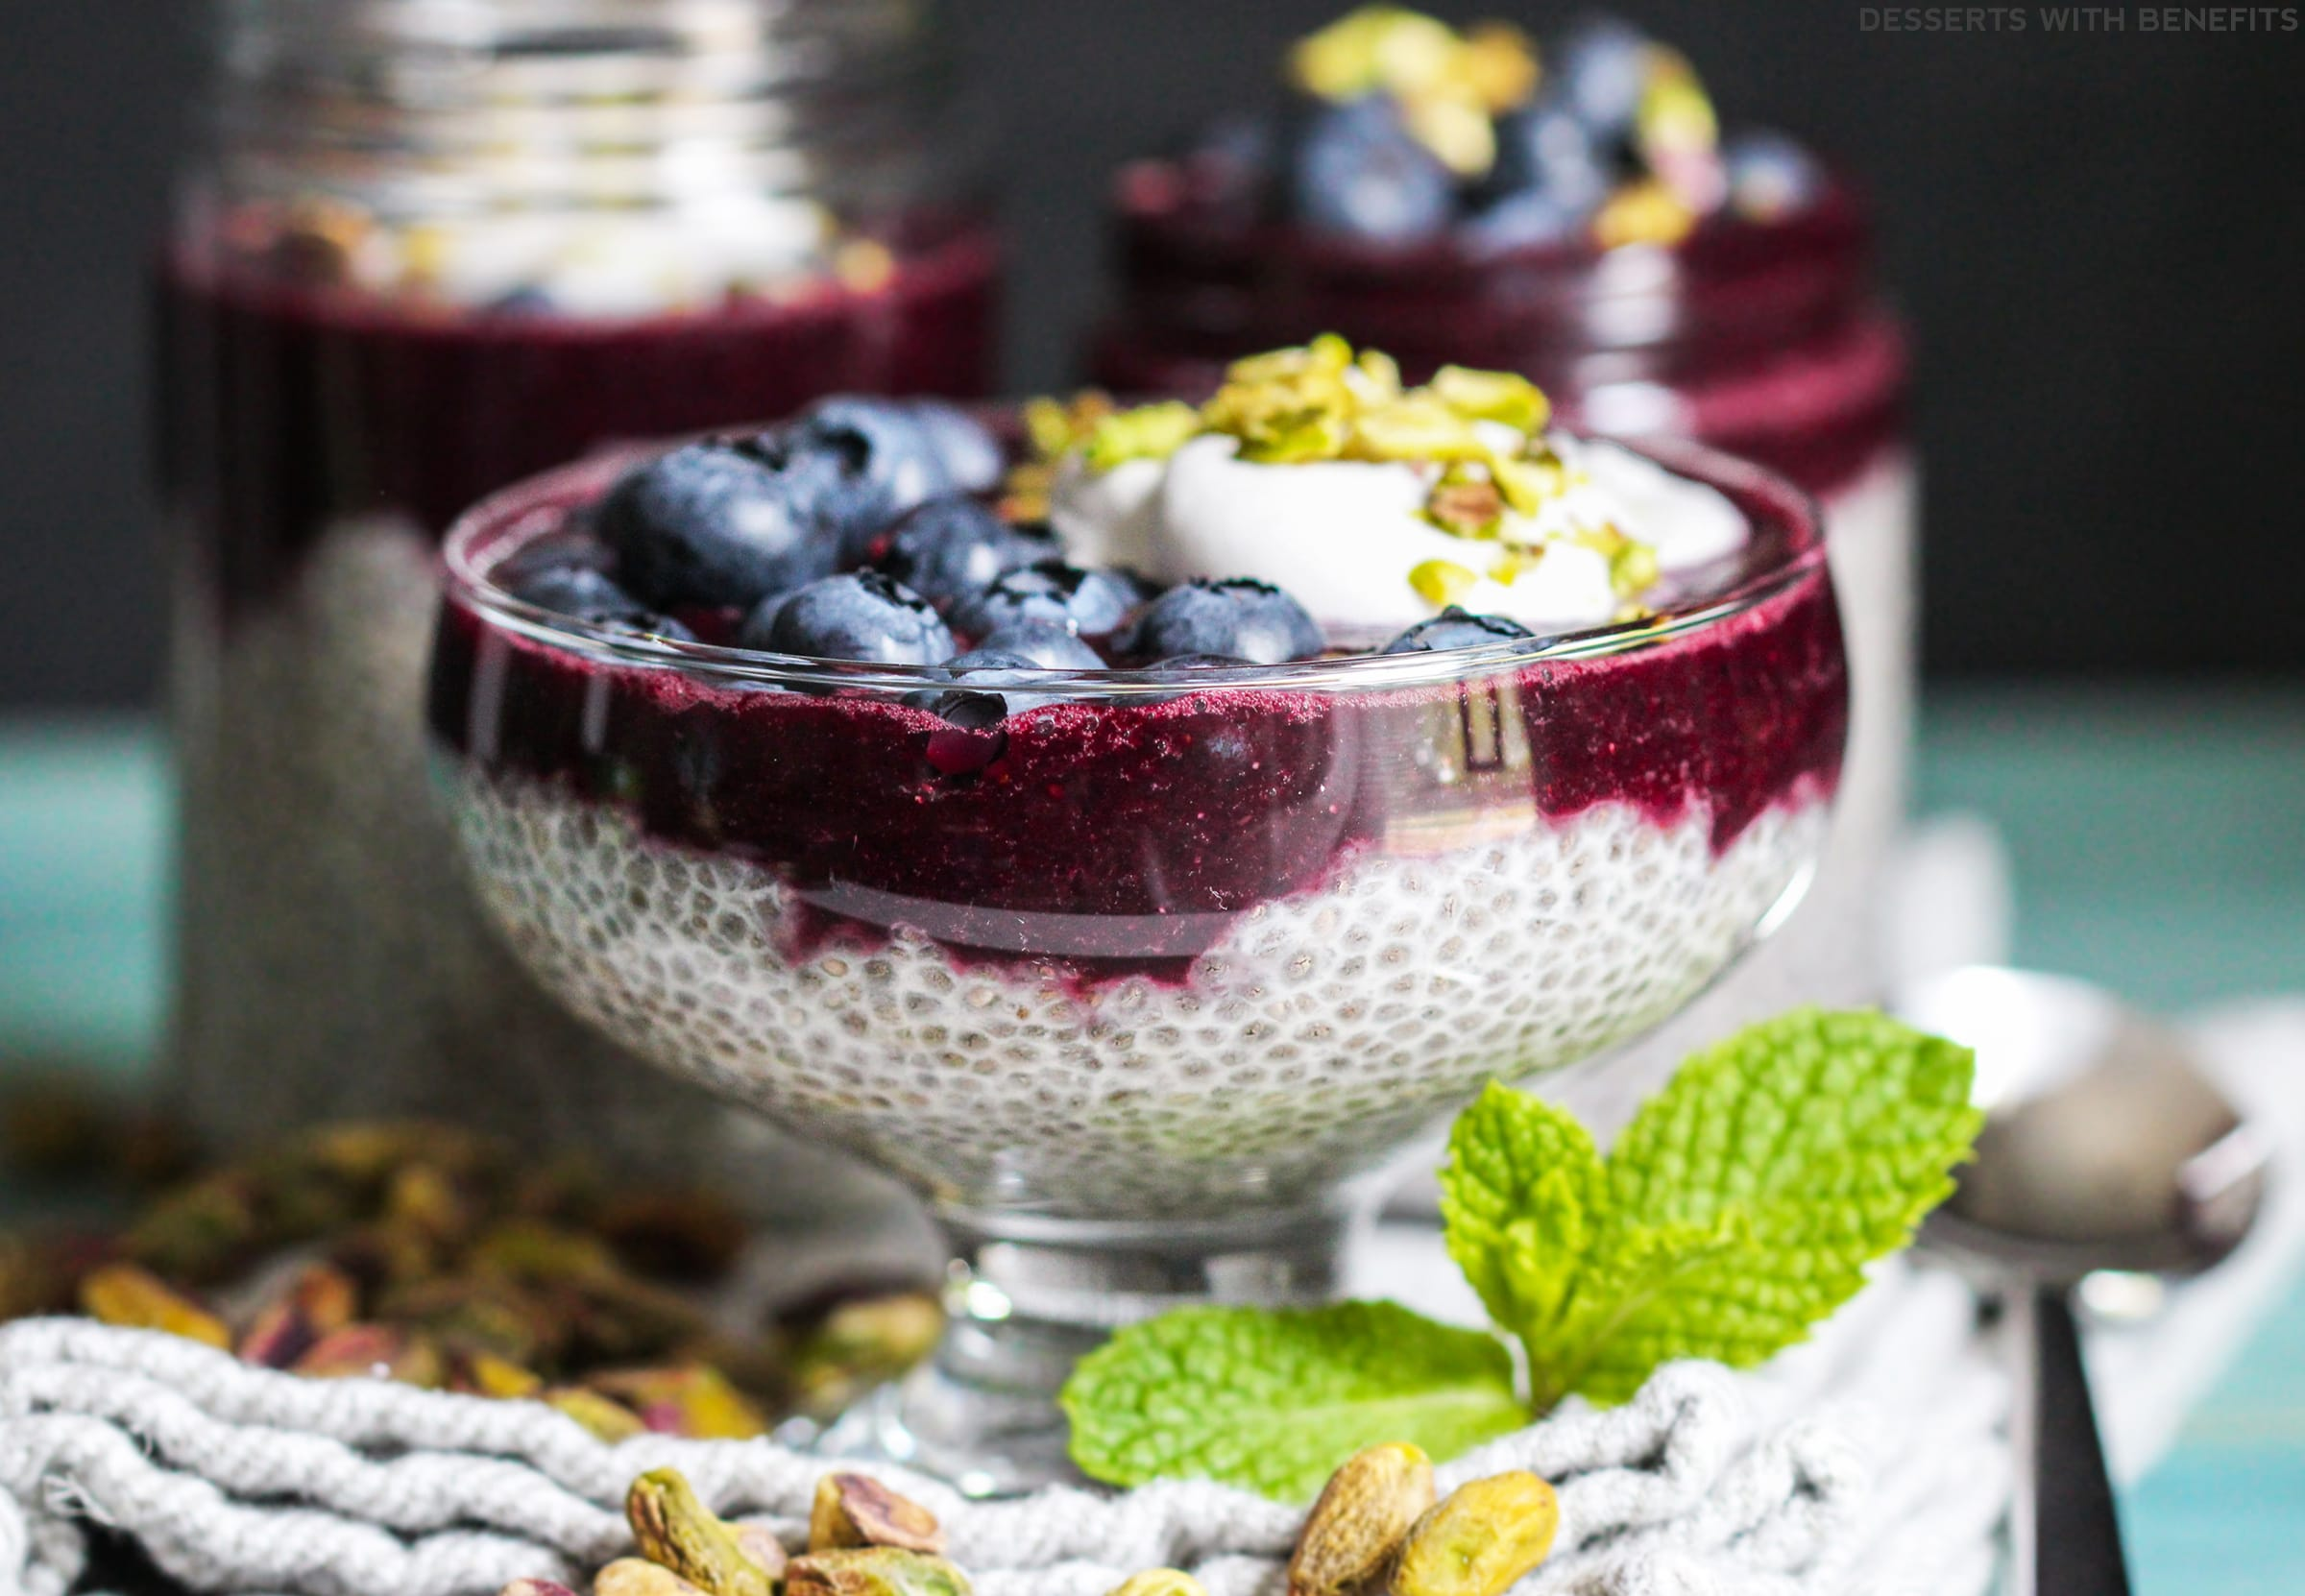 Healthy Blueberry Lemon Rosewater Chia Seed Pudding (refined sugar free, low fat, low calorie, high fiber, gluten free, dairy free, vegan) - Healthy Dessert Recipes at Desserts with Benefits